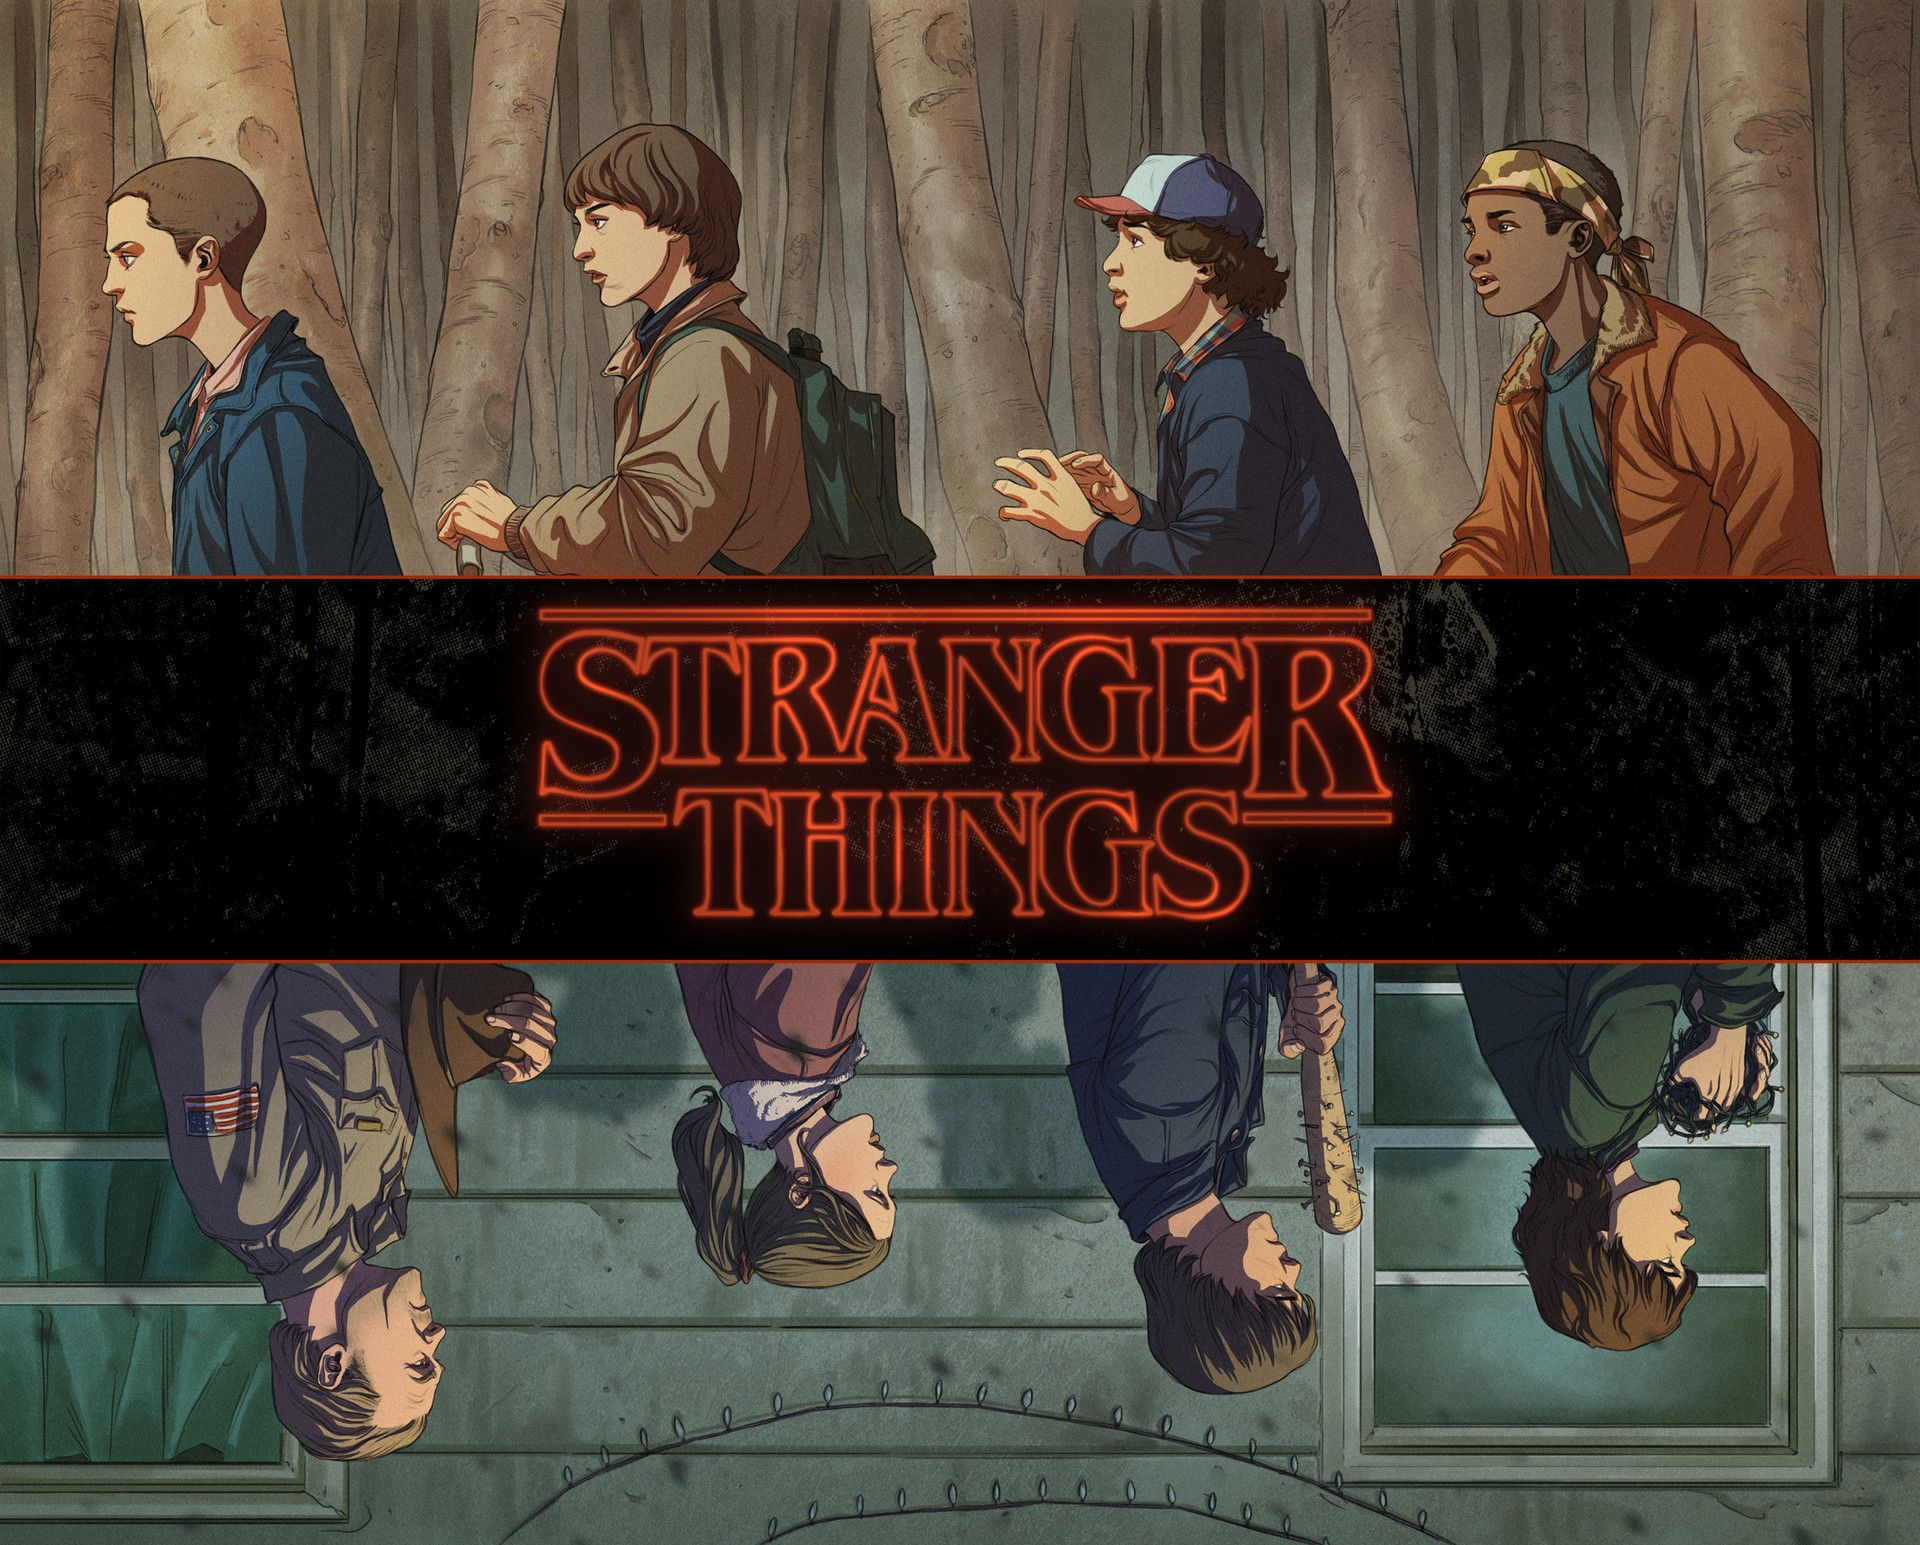 Stranger Things Aesthetic Desktop Wallpapers Top Free Stranger